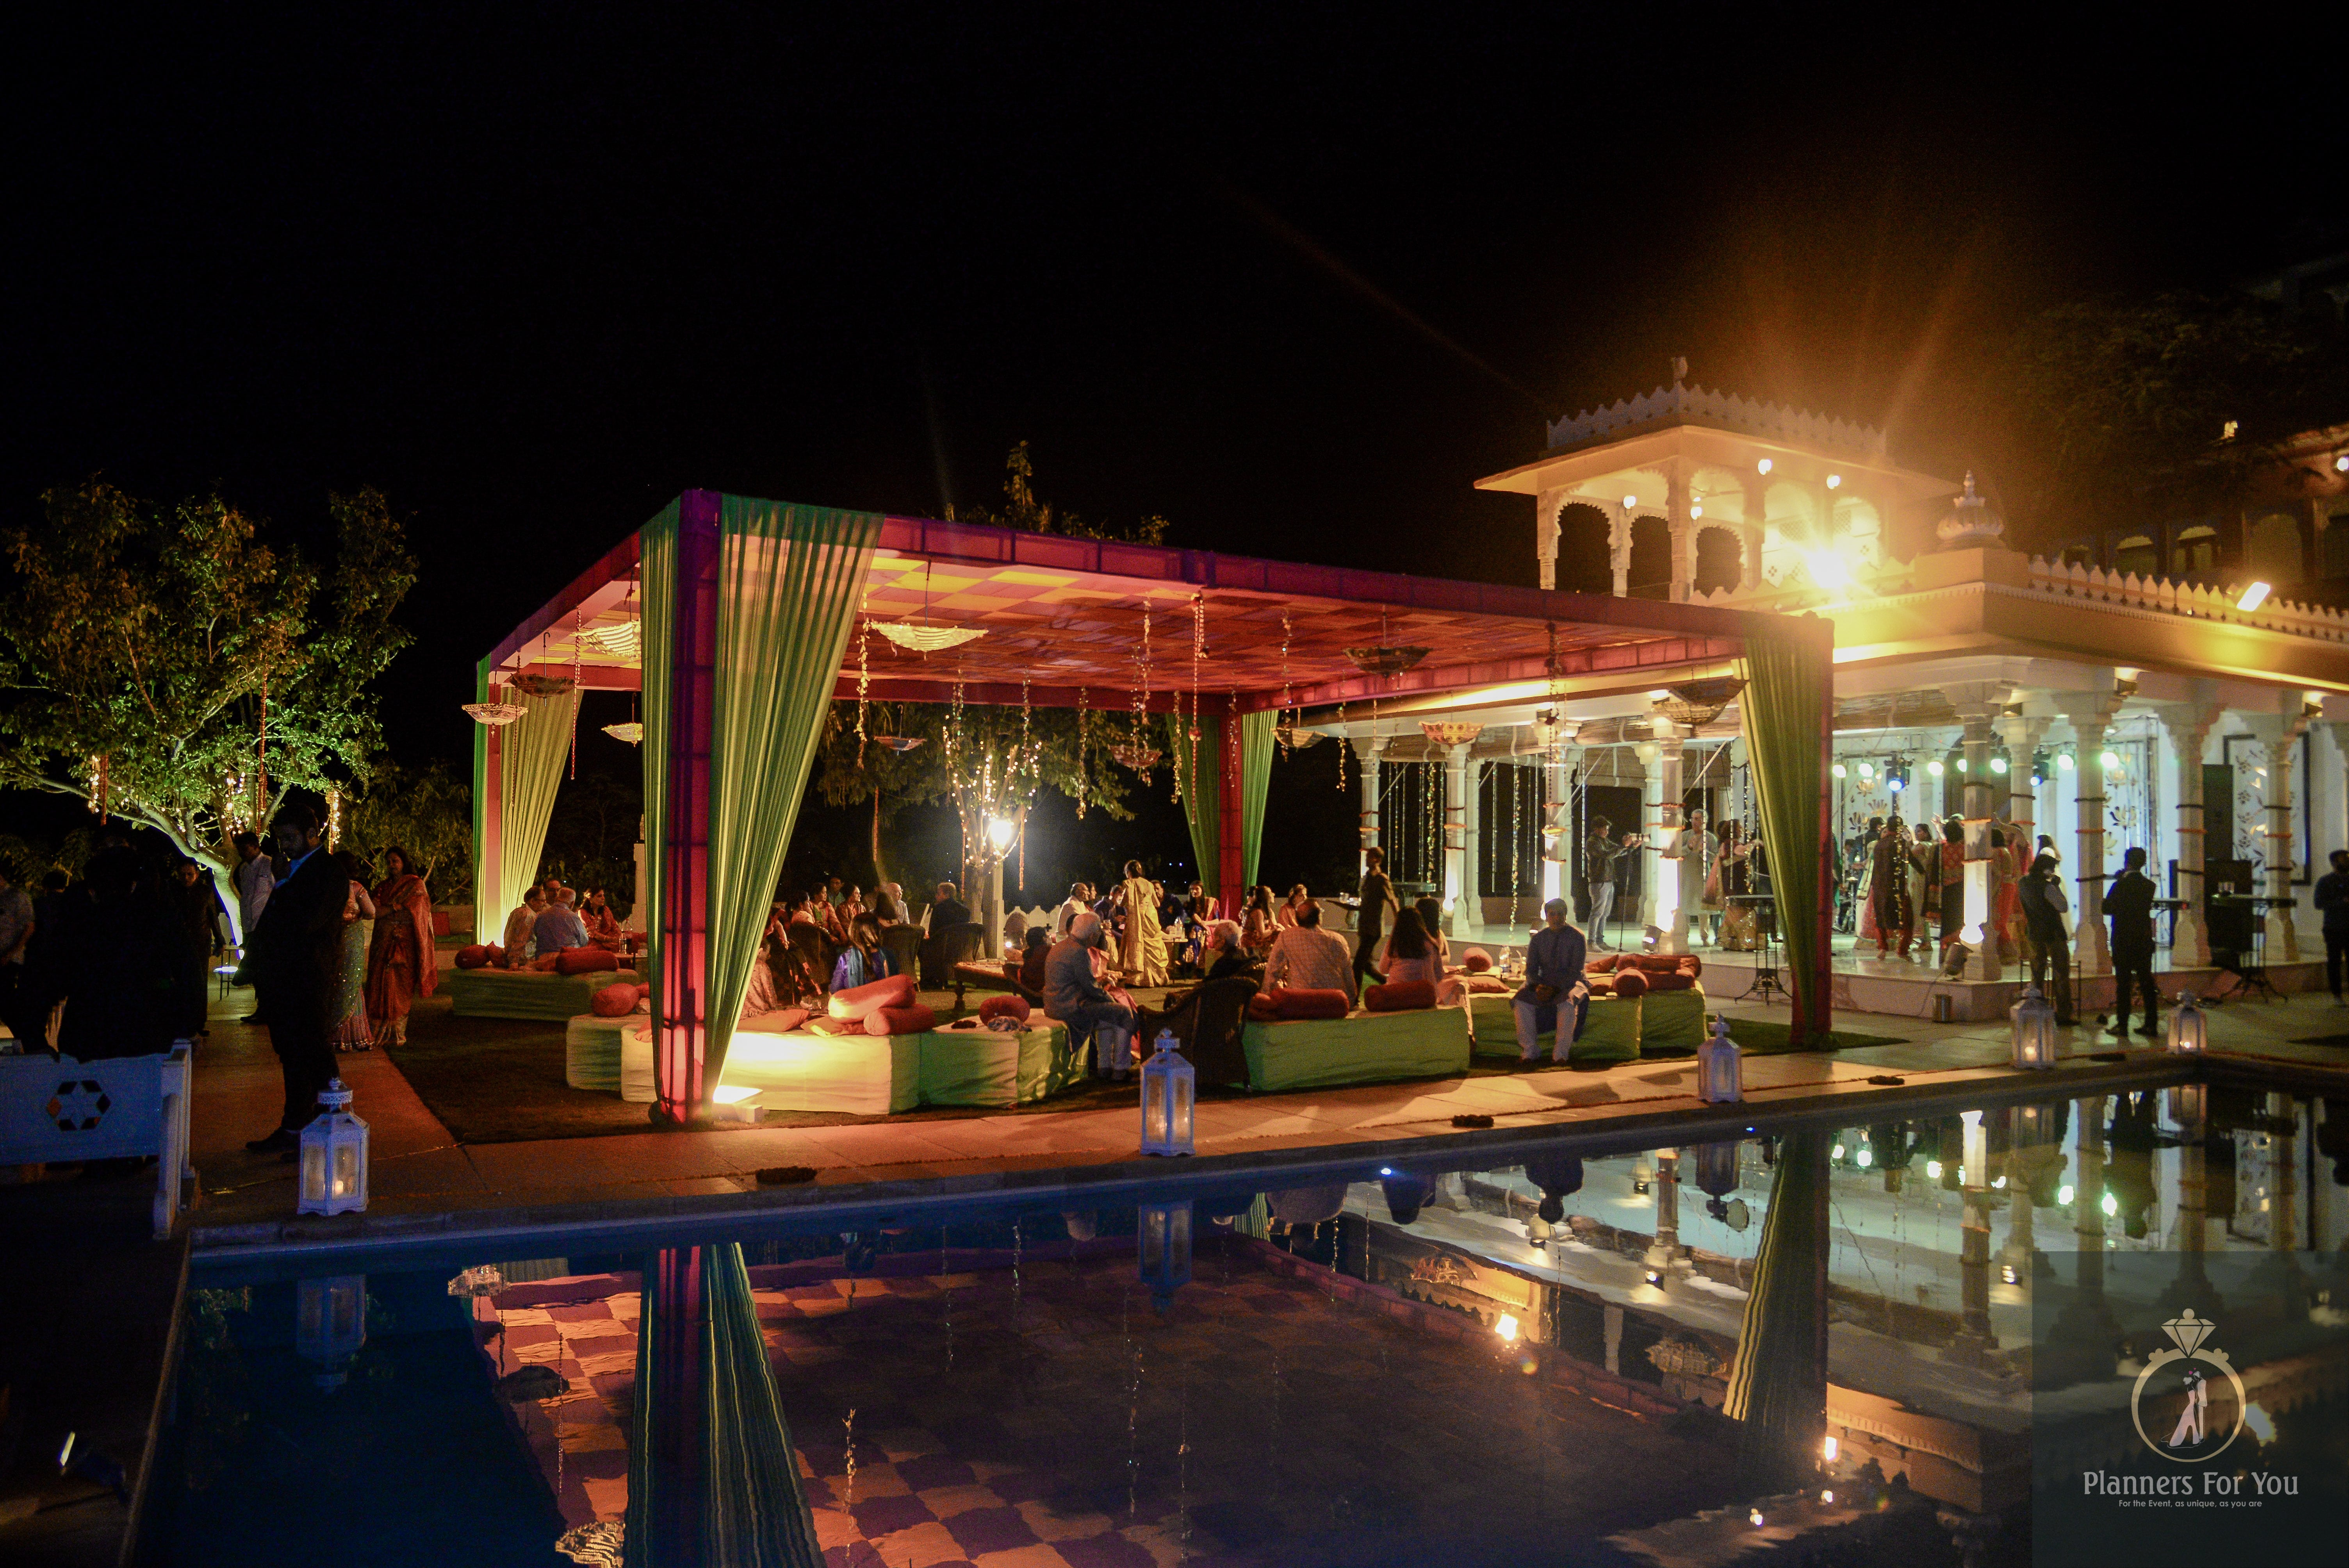 Wedding in Udaipur - Planners for You